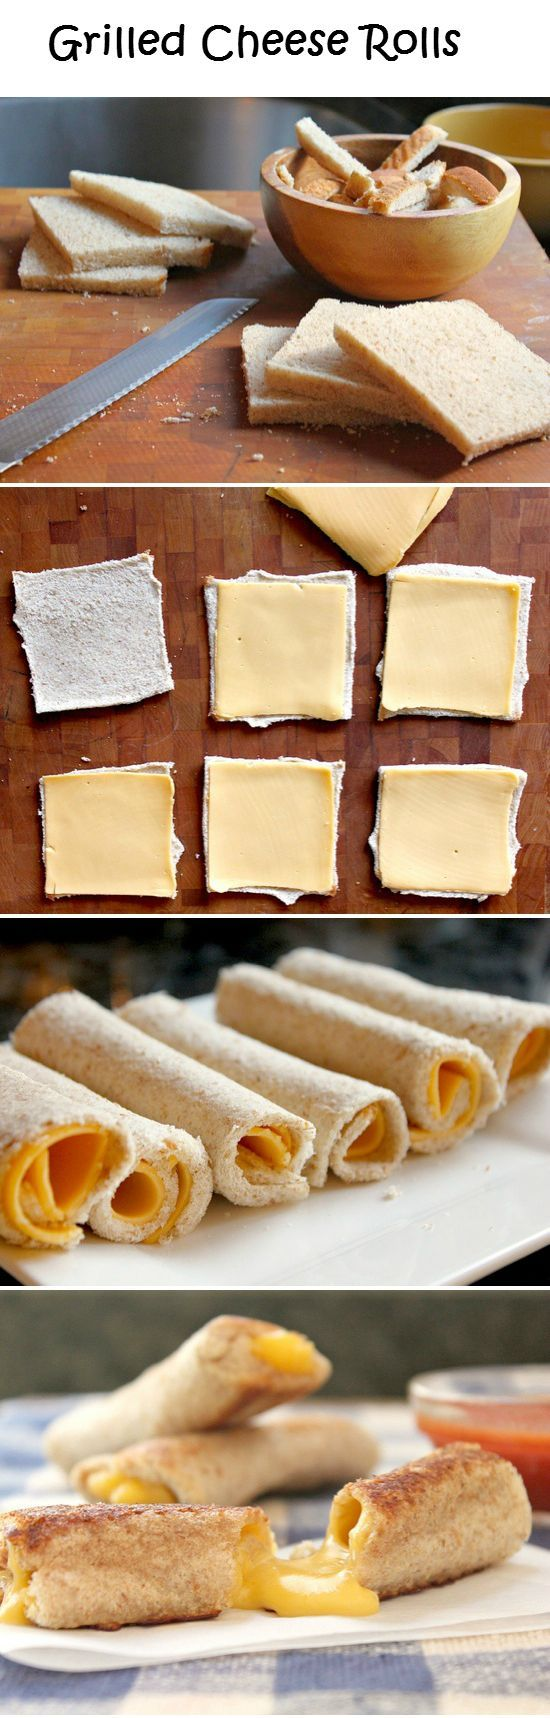 Grilled Cheese Rolls // use your favorite bread and cheese, serve with tomato soup, so lush!! #comfort #kids #appetizer